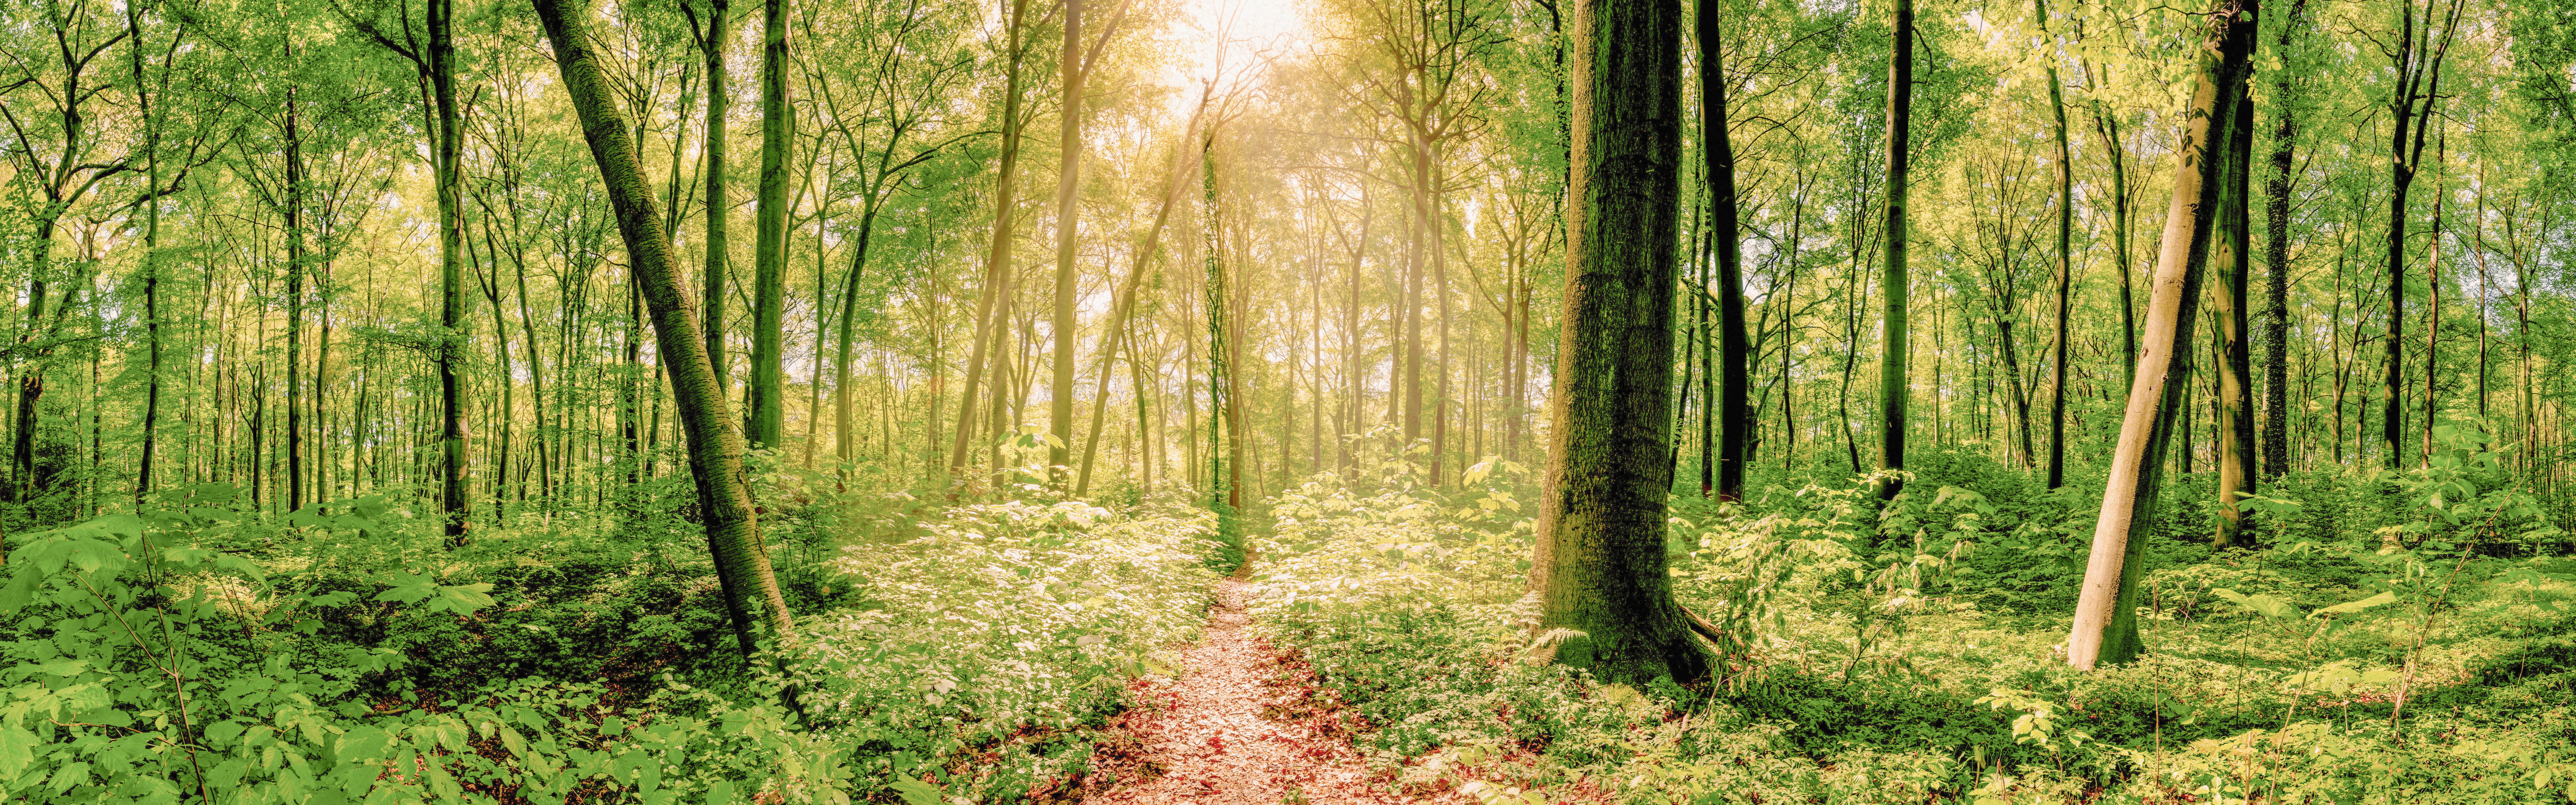 Photo of a trail through a flourishing forest, with the sun peeking through the trees.